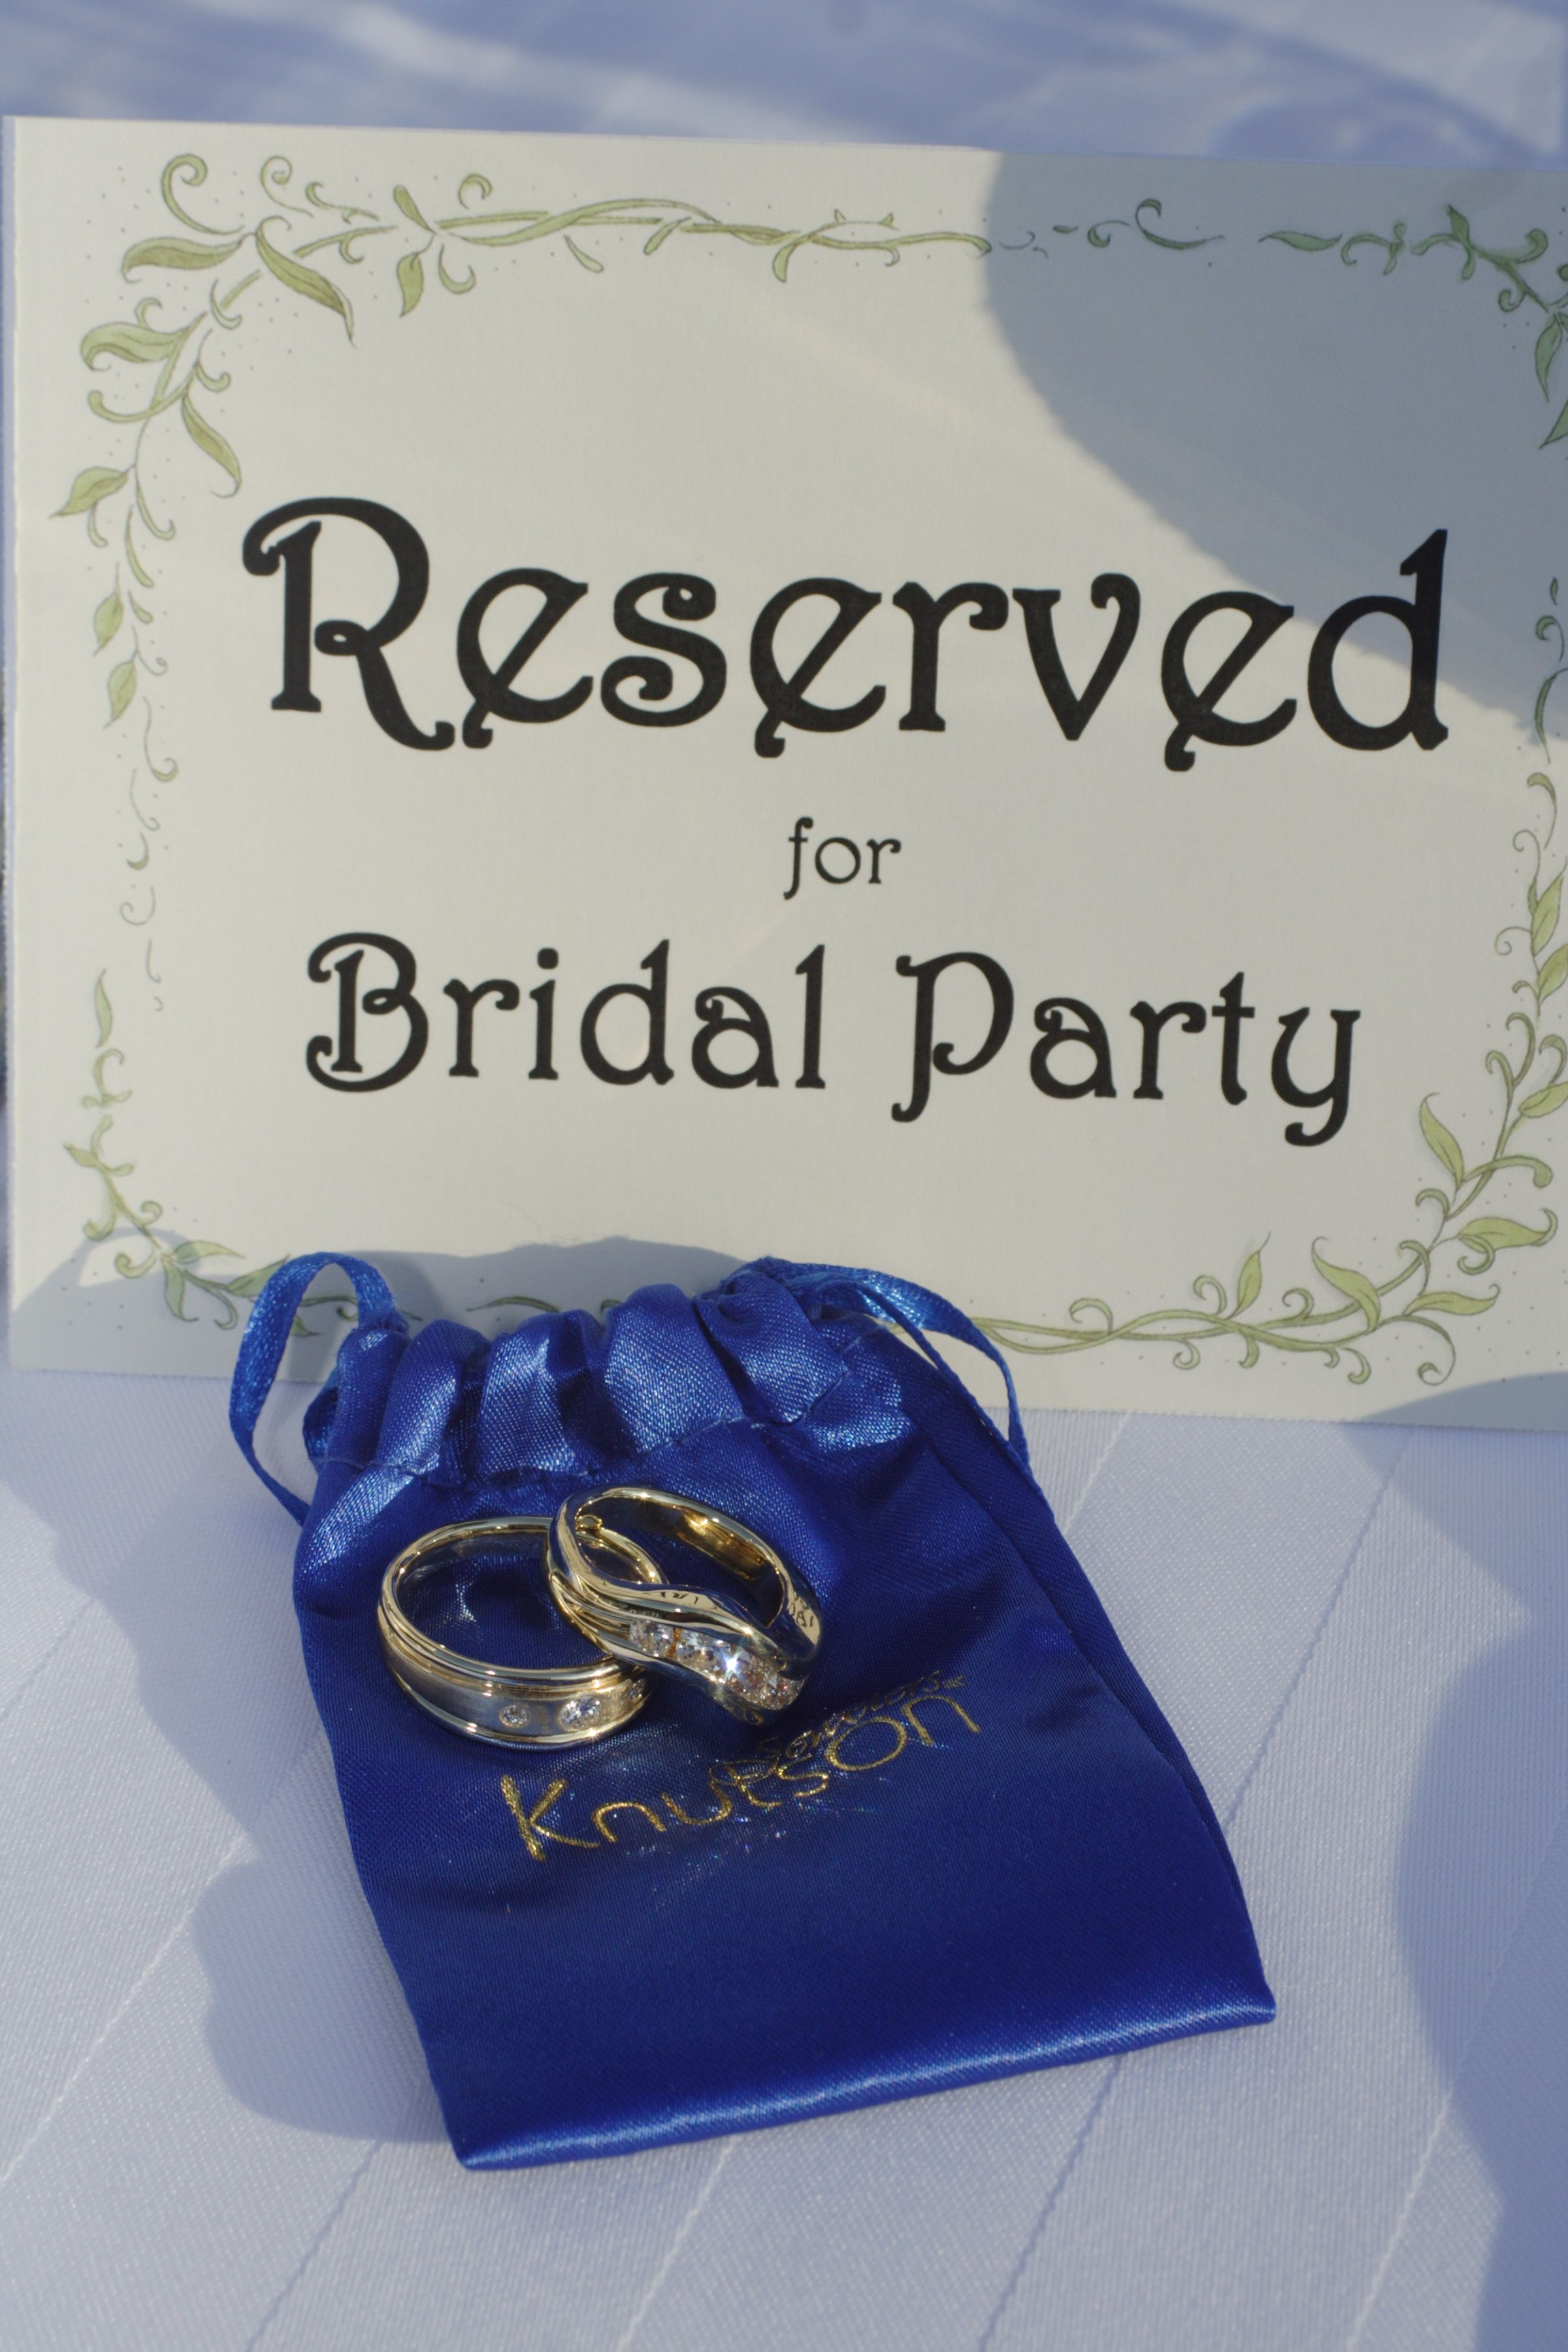 Reserved for Bridal Party by: Steven Reid, Stepsofaith.com